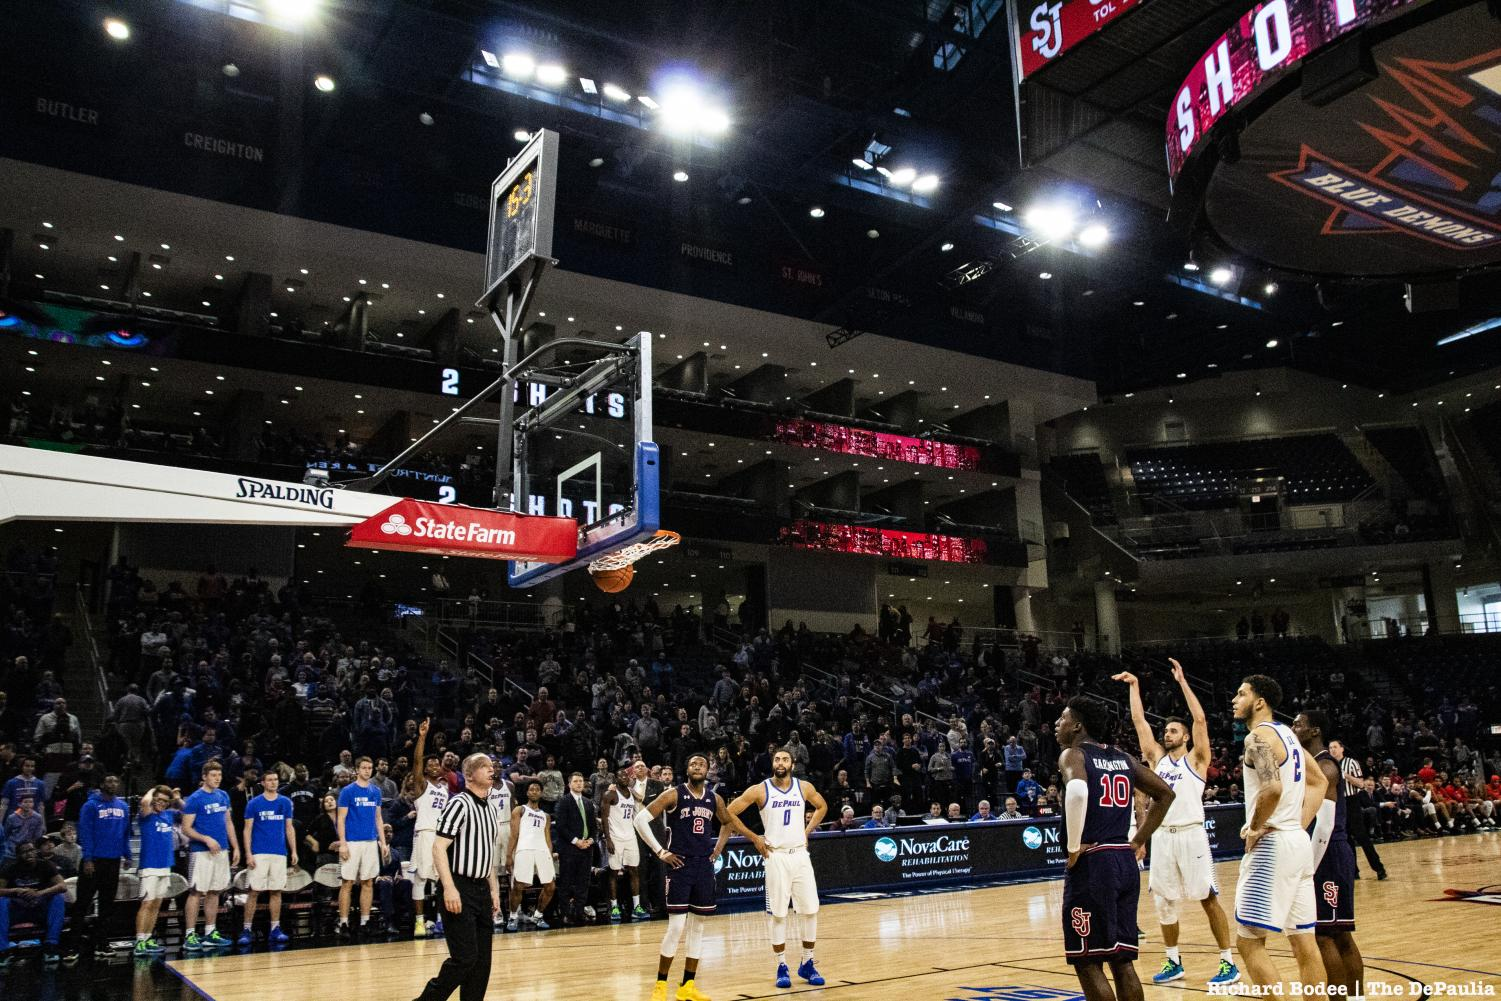 DePaul+senior+guard+Max+Strus+sinks+a+free+throw+to+finish+with+a+career+high+43+points+Sunday+afternoon+at+Wintrust+Arena.+Richard+Bodee+%7C+The+DePaulia